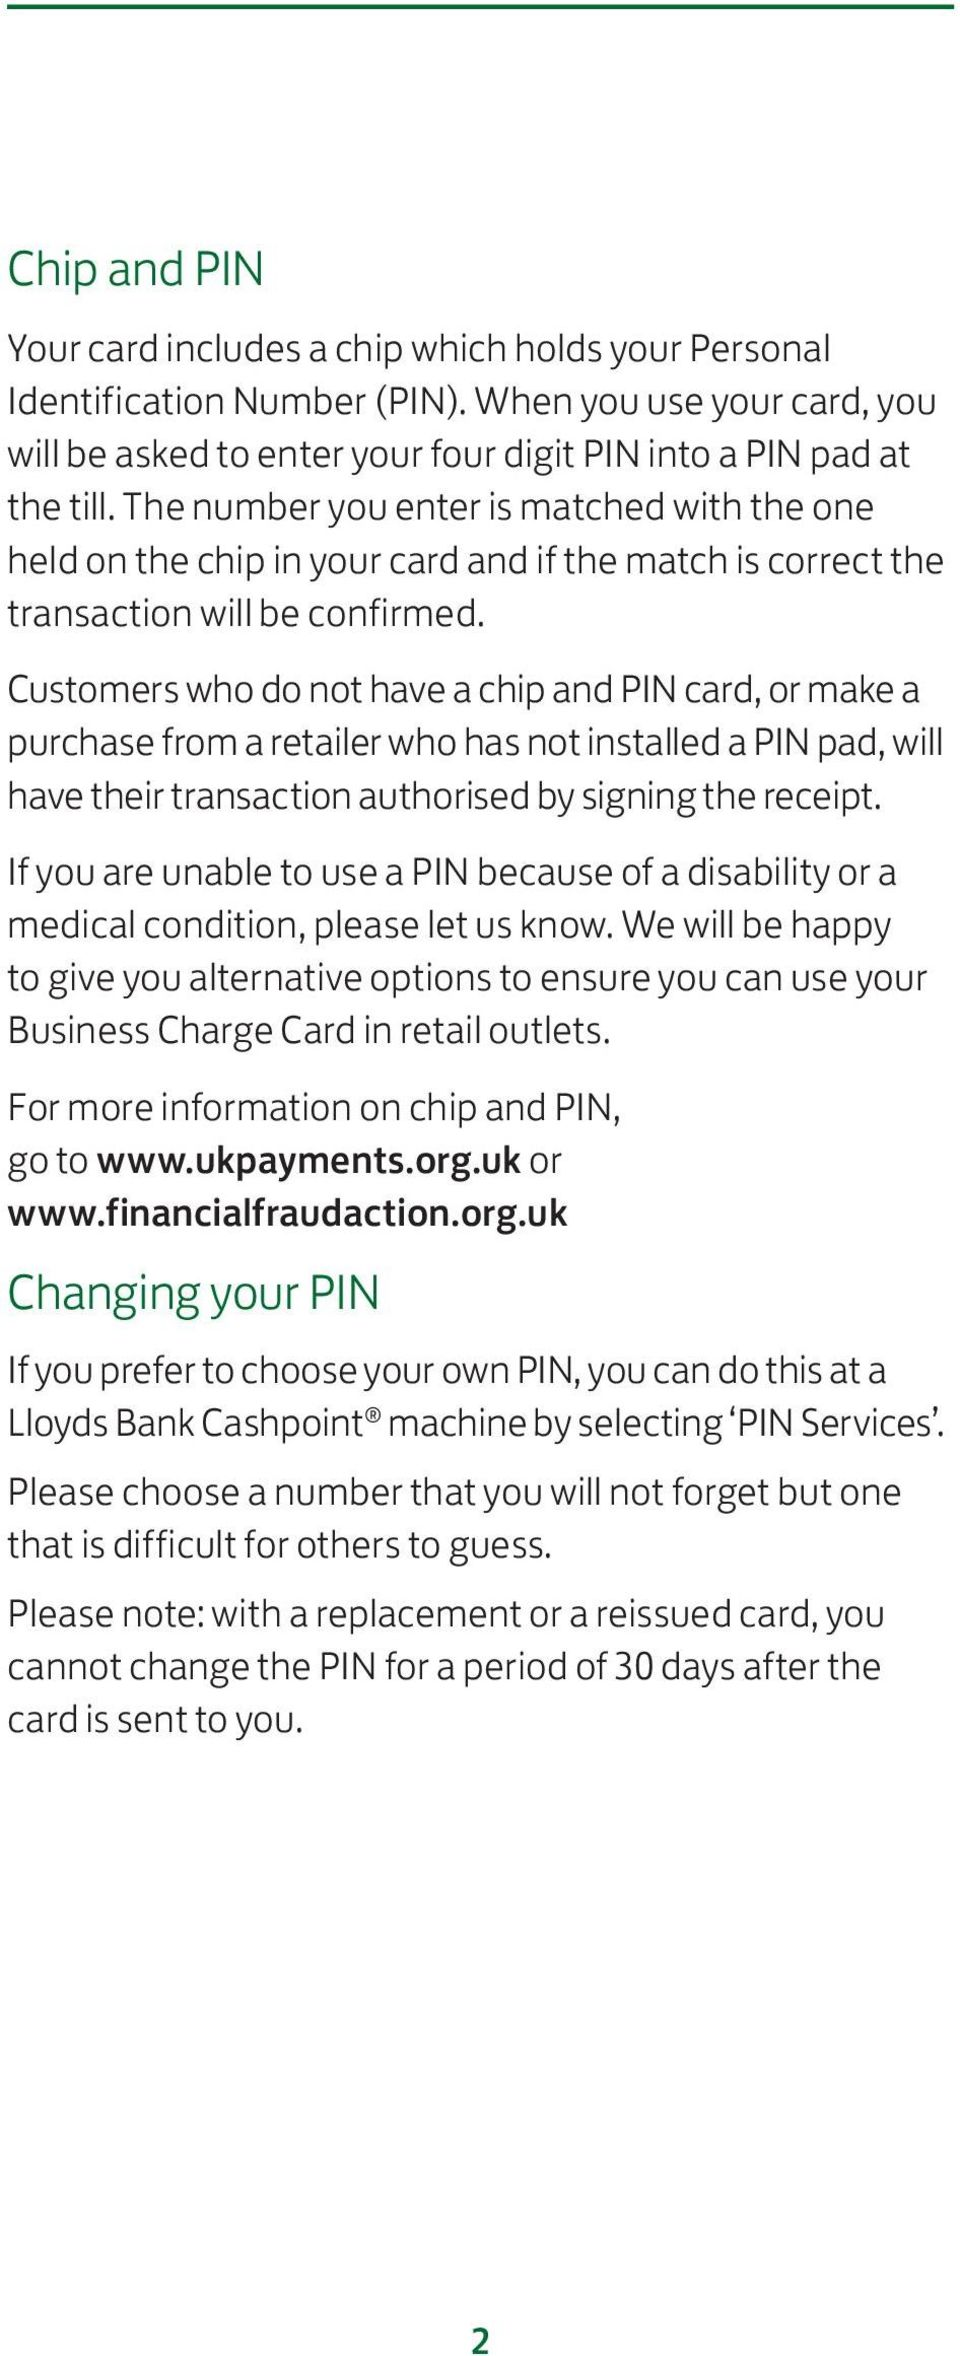 Customers who do not have a chip and PIN card, or make a purchase from a retailer who has not installed a PIN pad, will have their transaction authorised by signing the receipt.